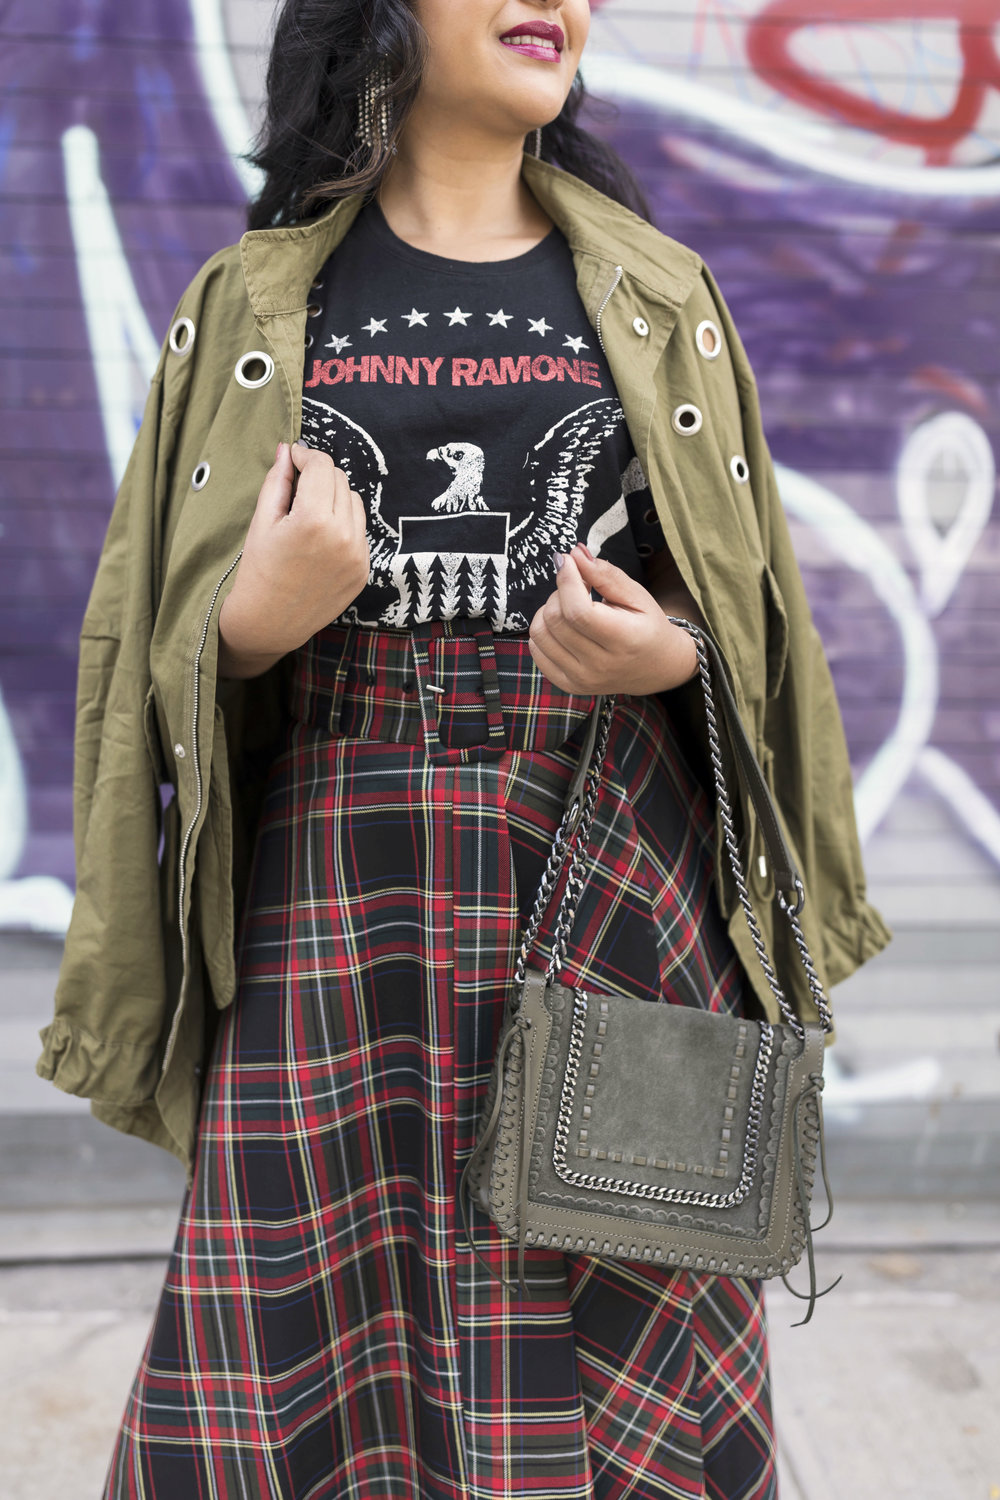 Krity S x Fall Trends x Plaid with a Punk Twist12.jpg